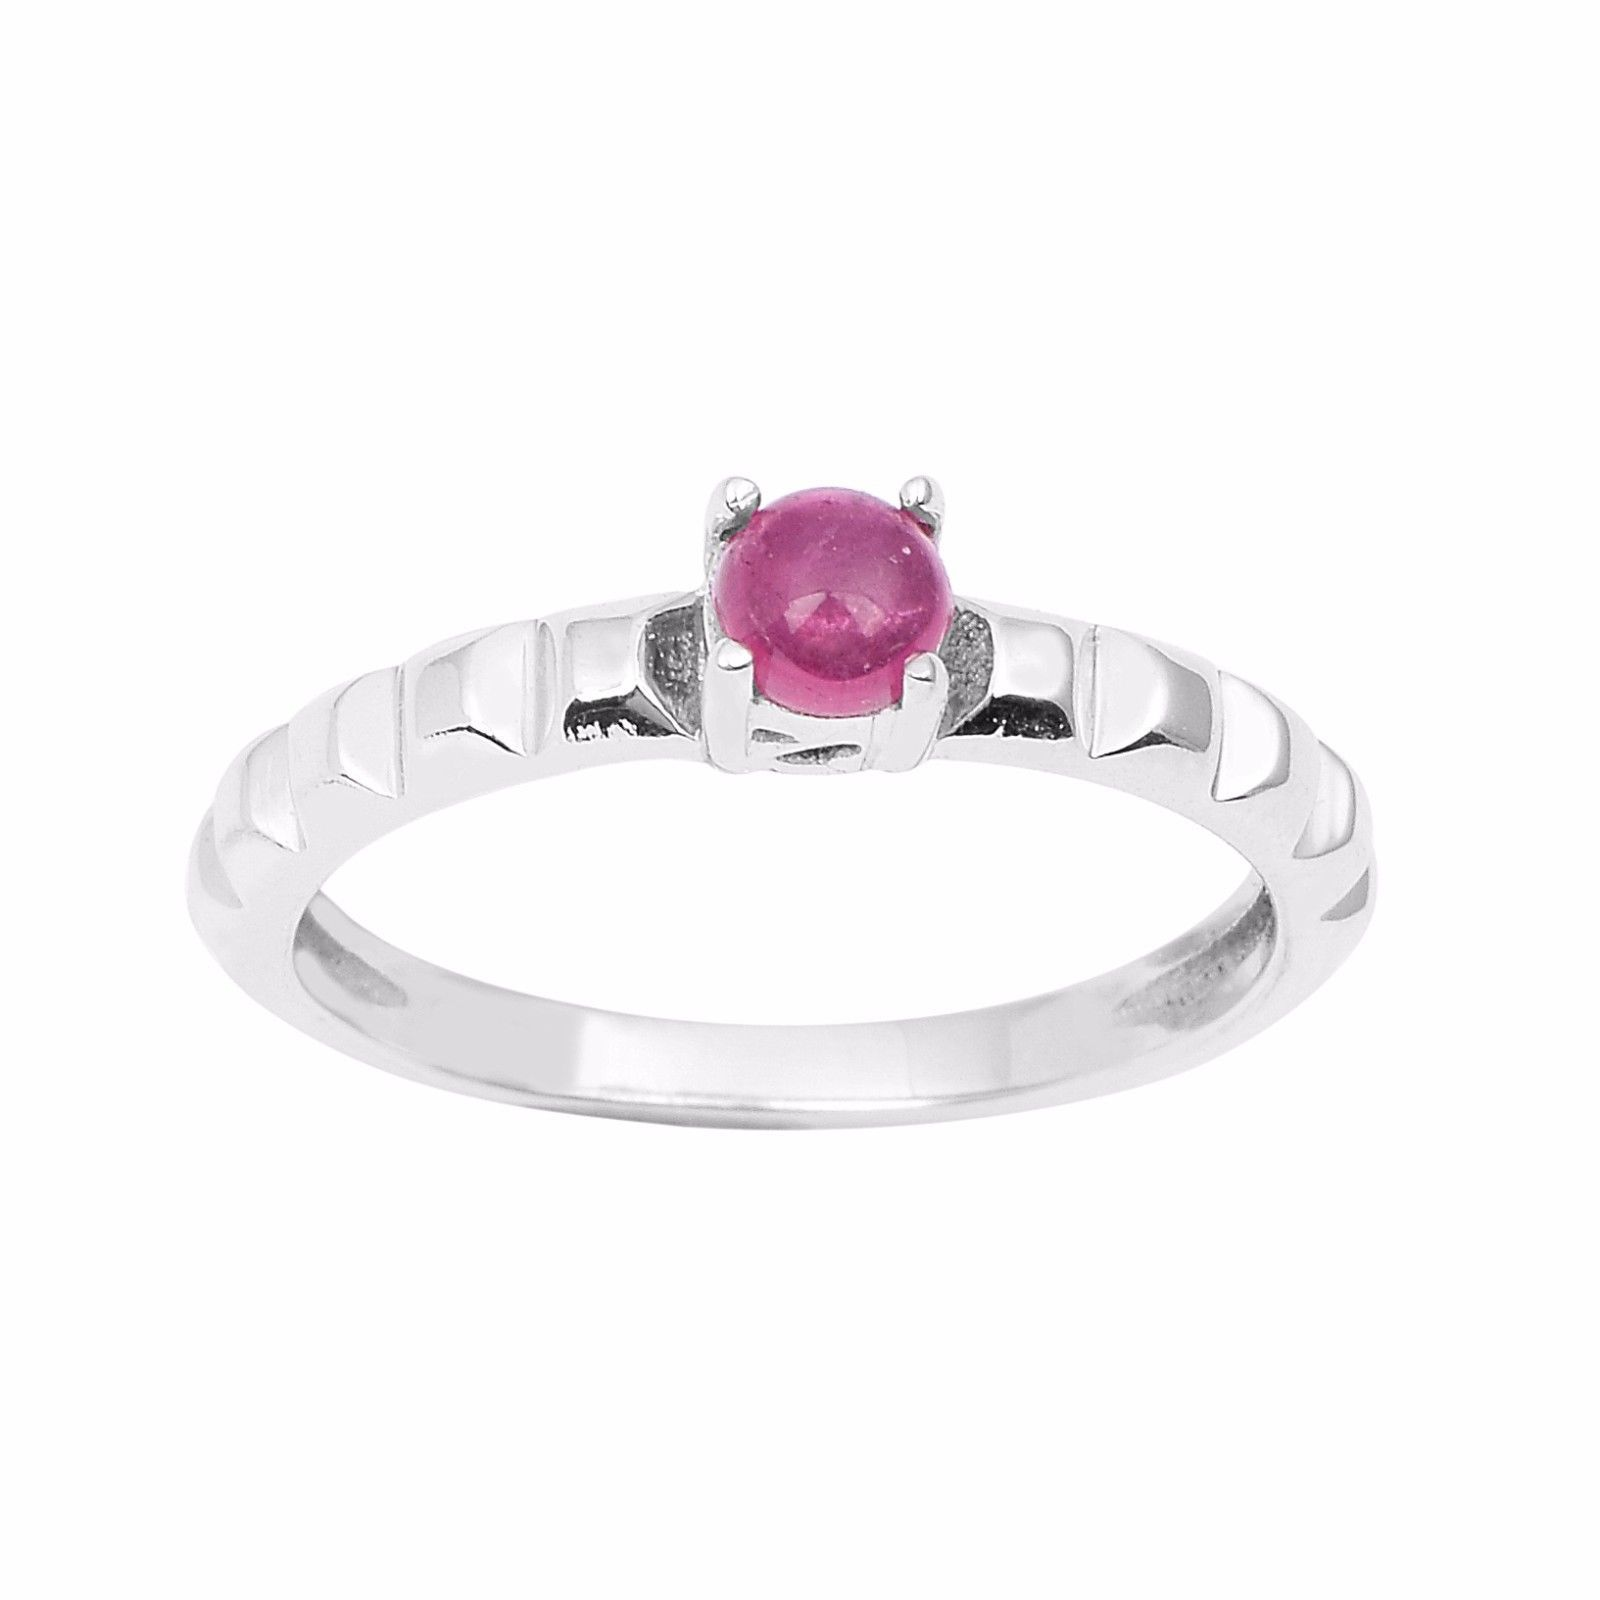 Solid 925 Sterling Mini Pink Tourmaline Gemstone Silver Ring Sz 6 SHRI0932